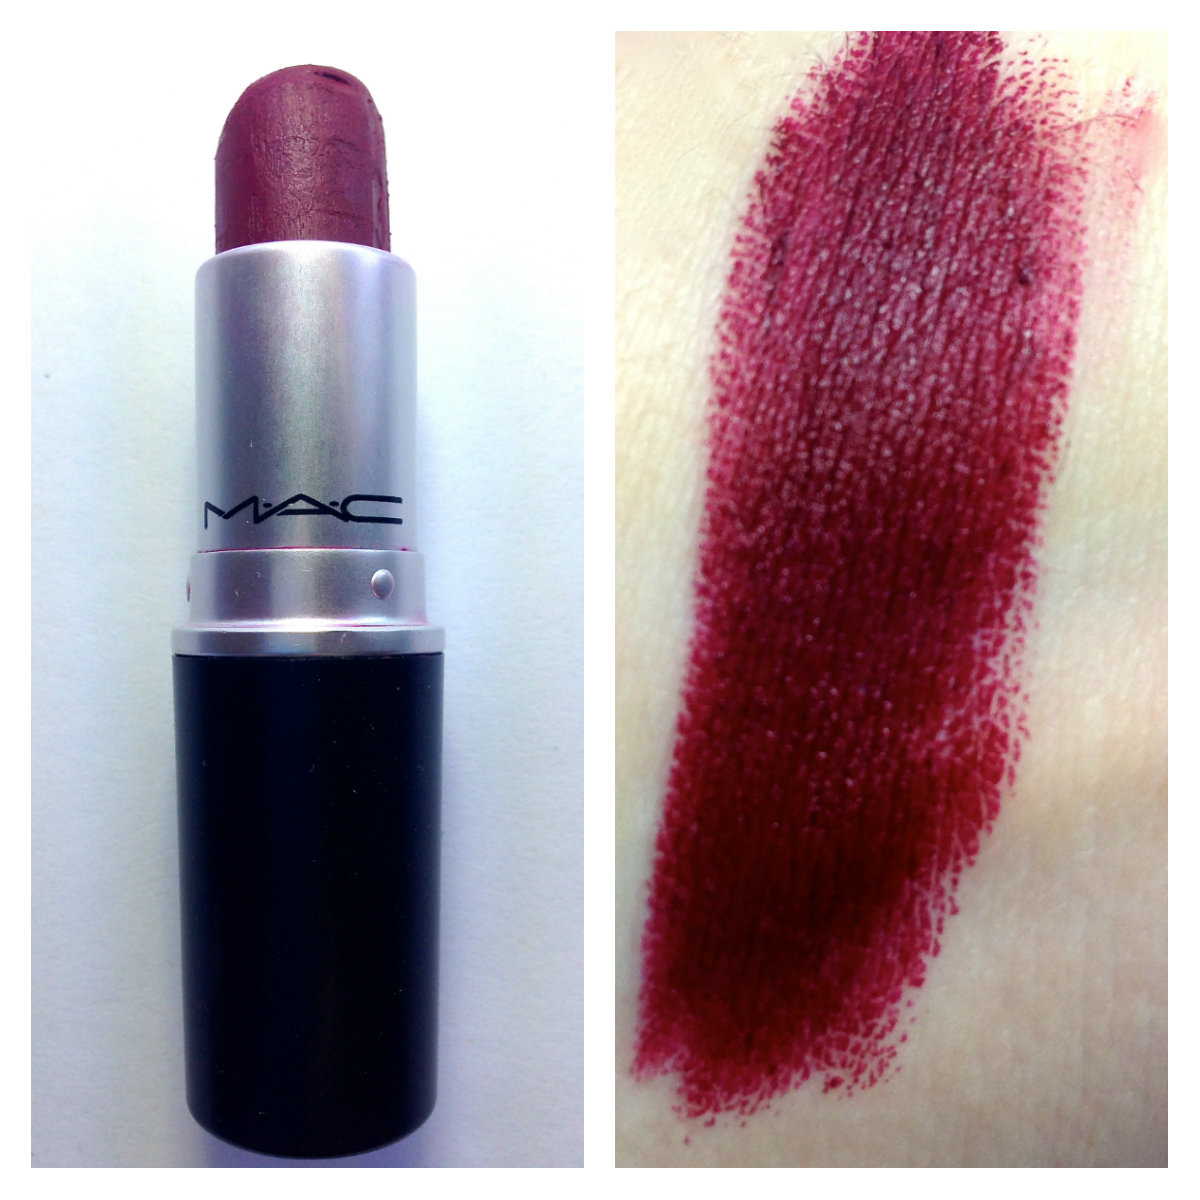 Basics By Morgan: MAC Diva Lipstick